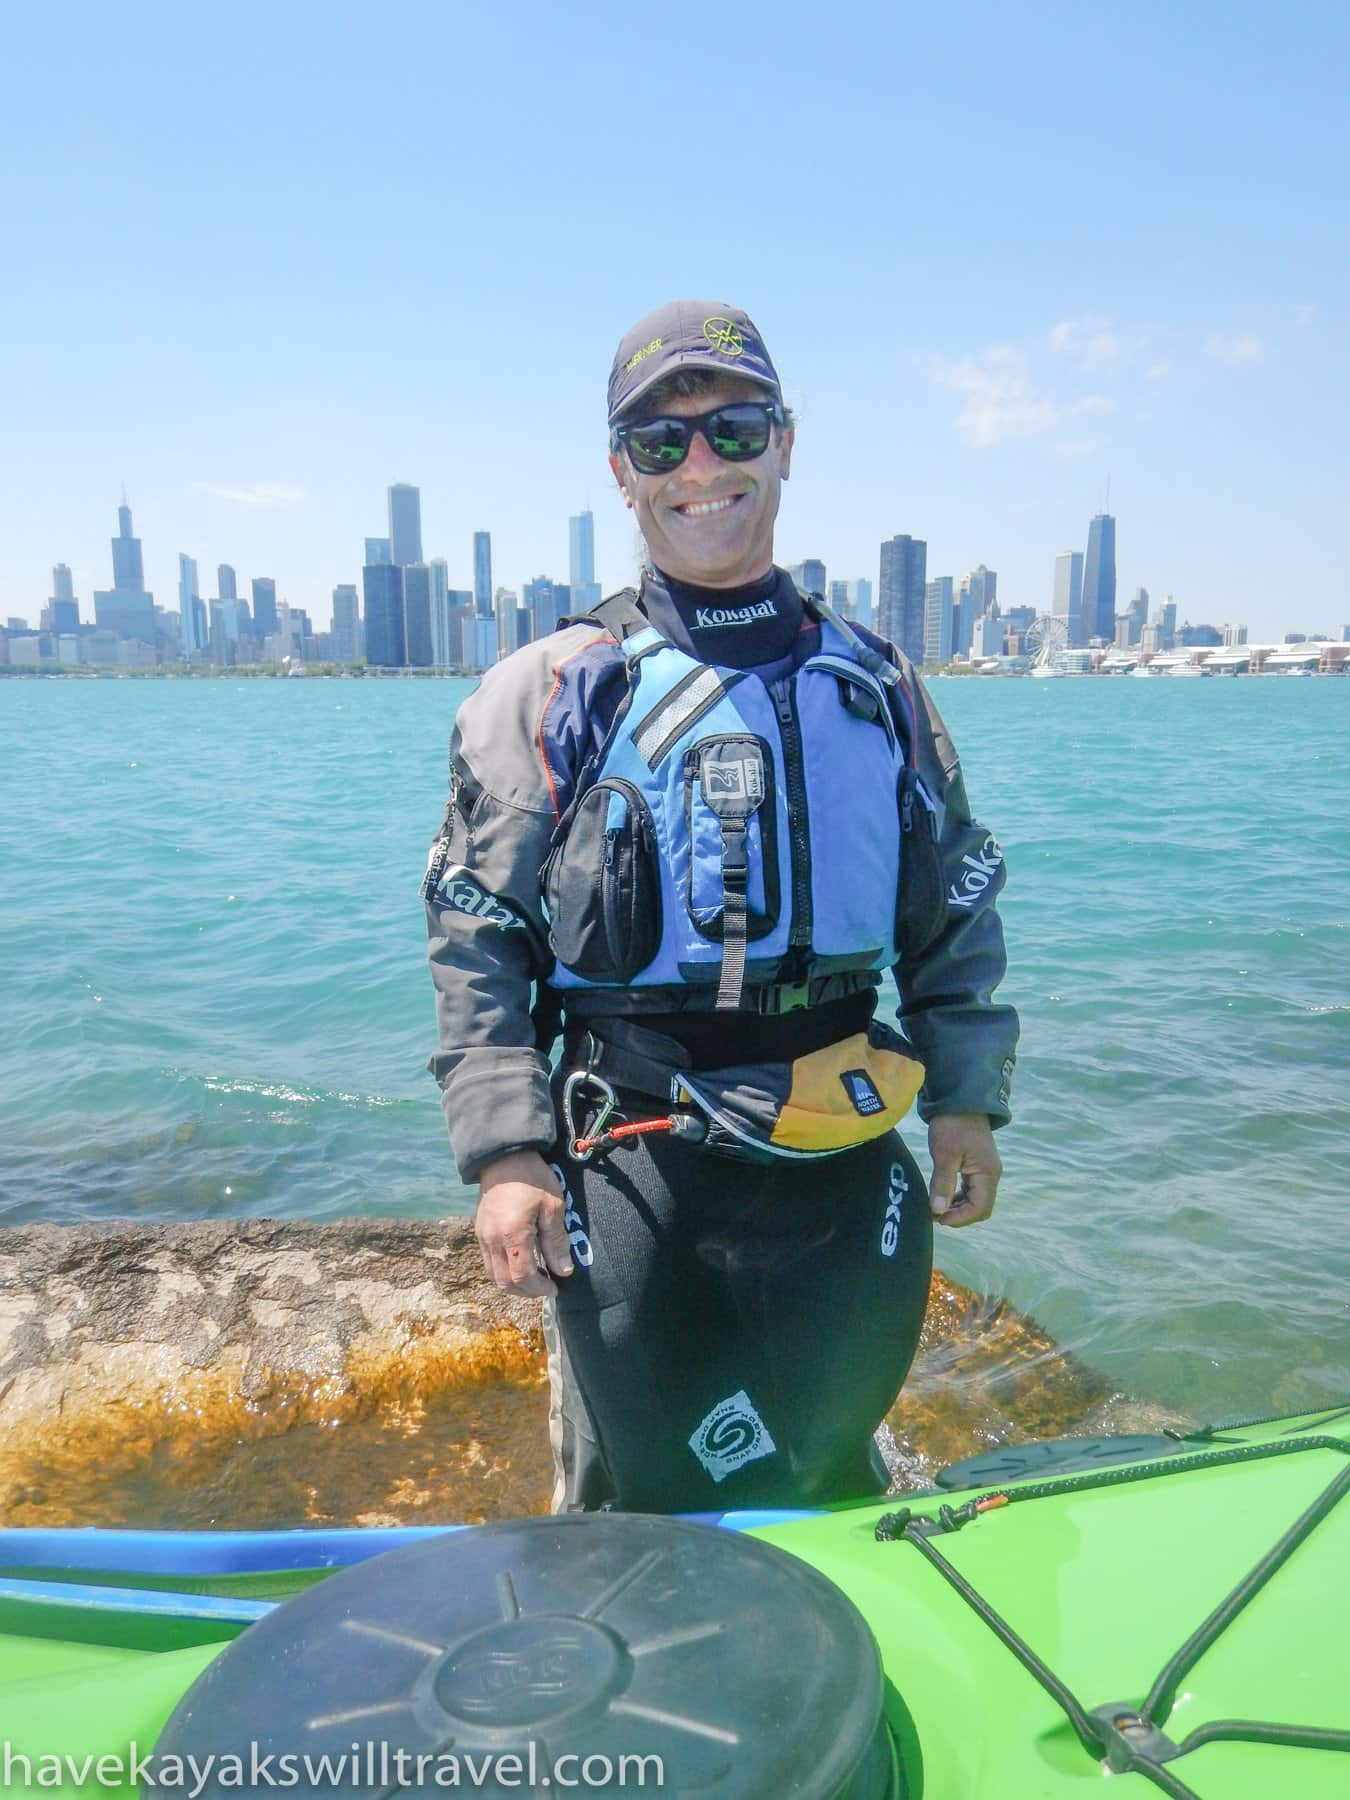 Alec Bloyd-Peshkin kayak coach at great lakes sea kayak symposium